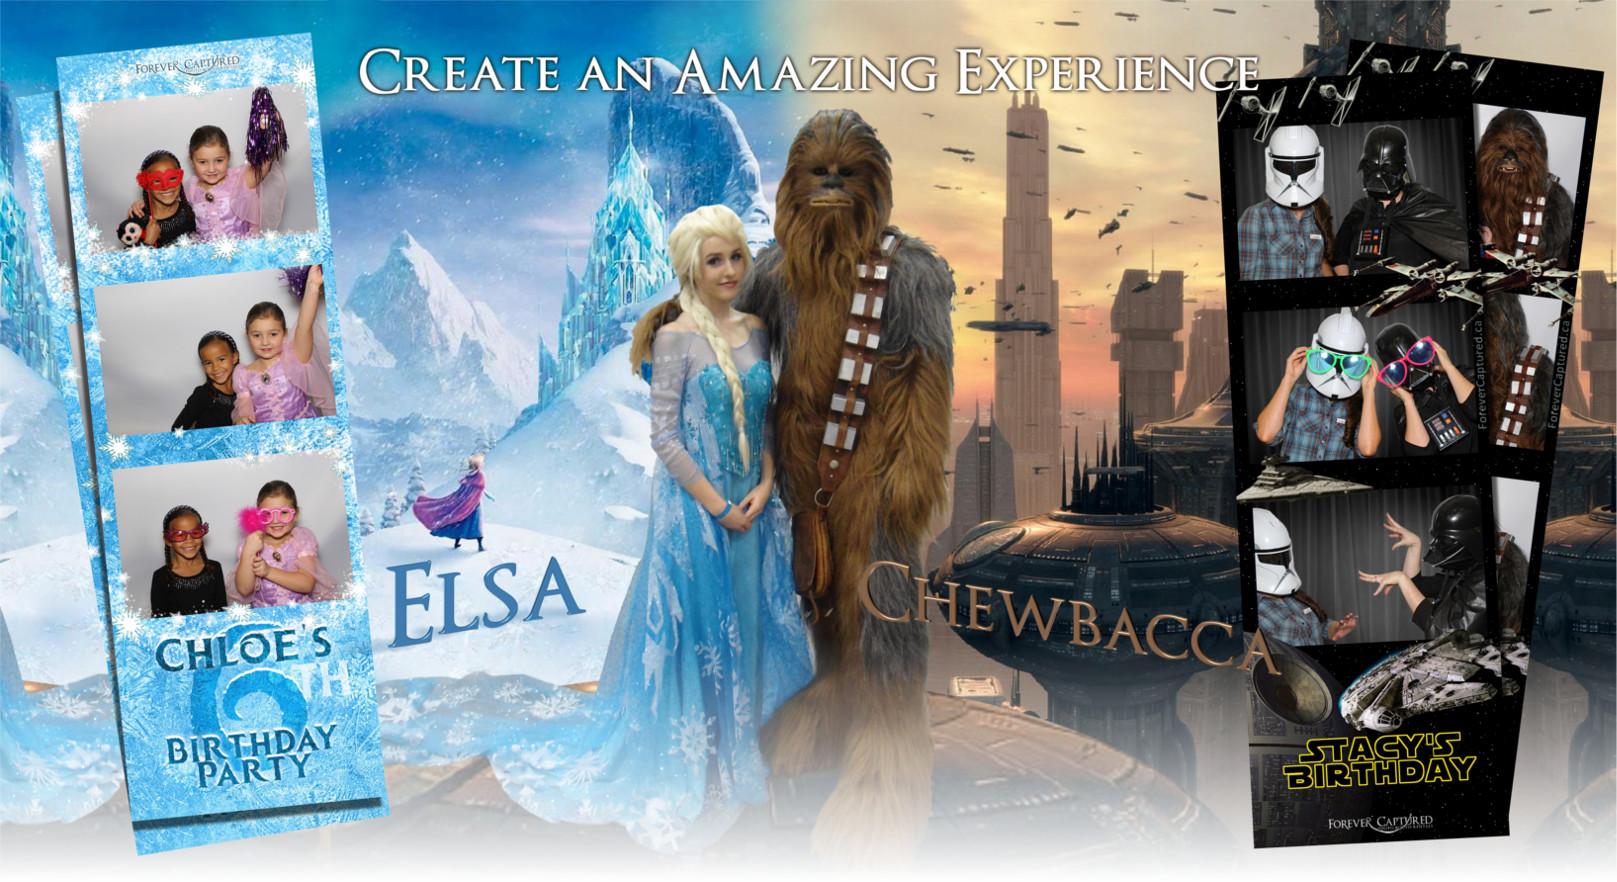 Elsa, Chewbacca, and other photo booth characters.